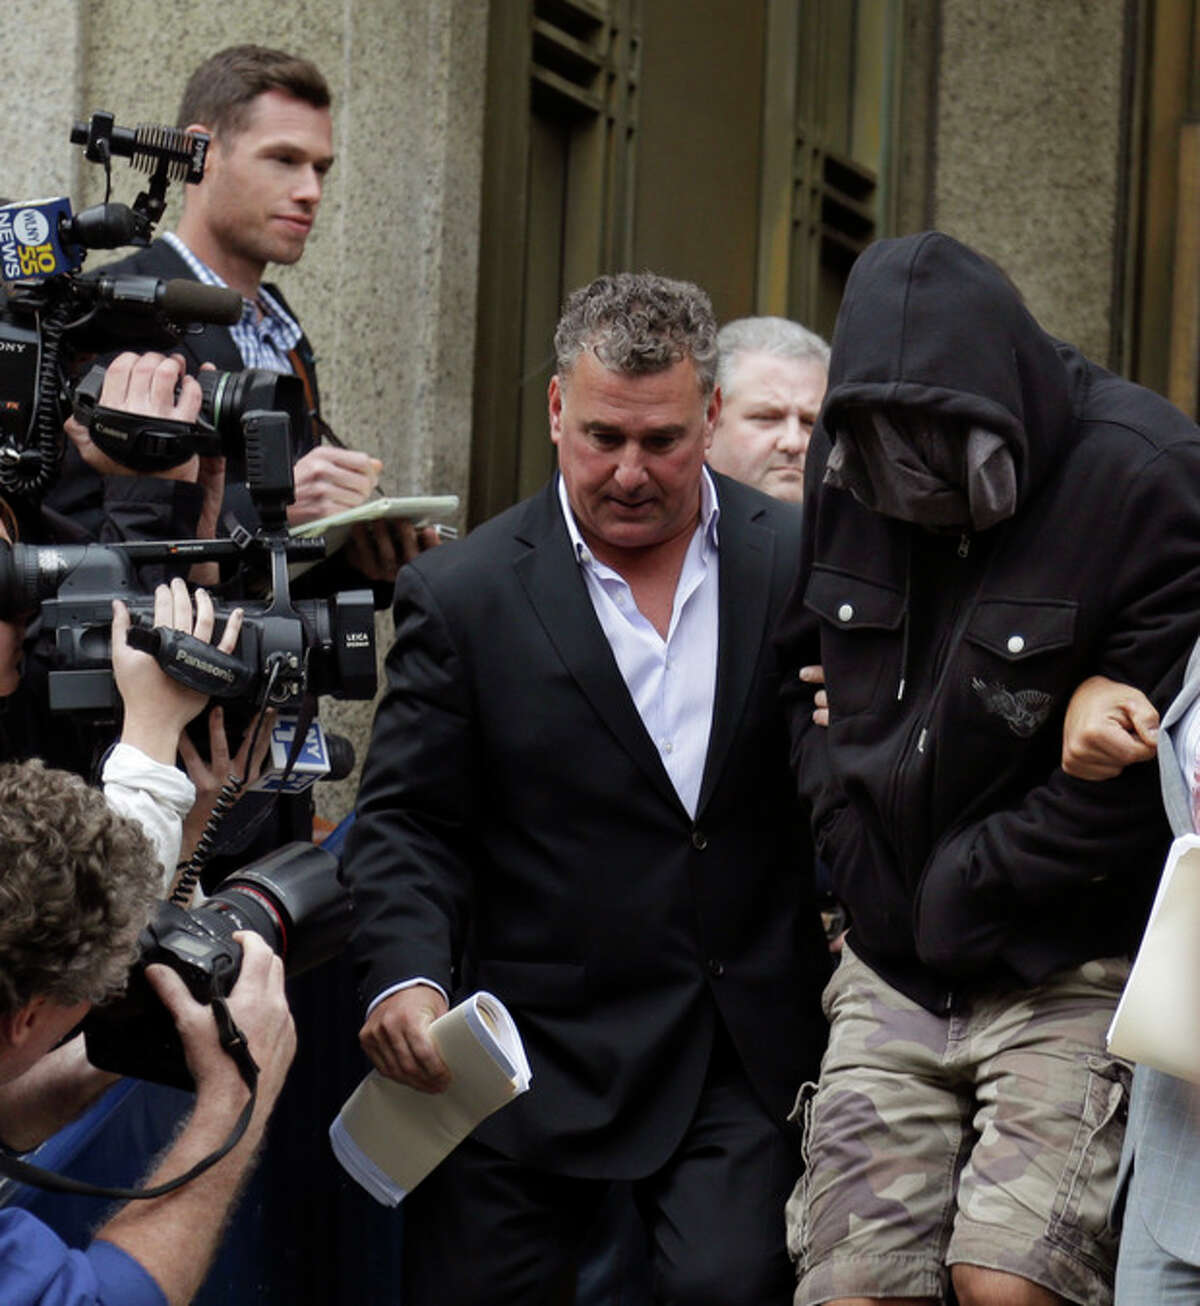 Wojciech Braszczok, right, with face covered, leaves the courthouse in New York, Wednesday, Oct. 9, 2013. Braszczok, an undercover police detective, was charged with gang assault in a motorcycle rally that descended into violence in New York. (AP Photo/Seth Wenig)